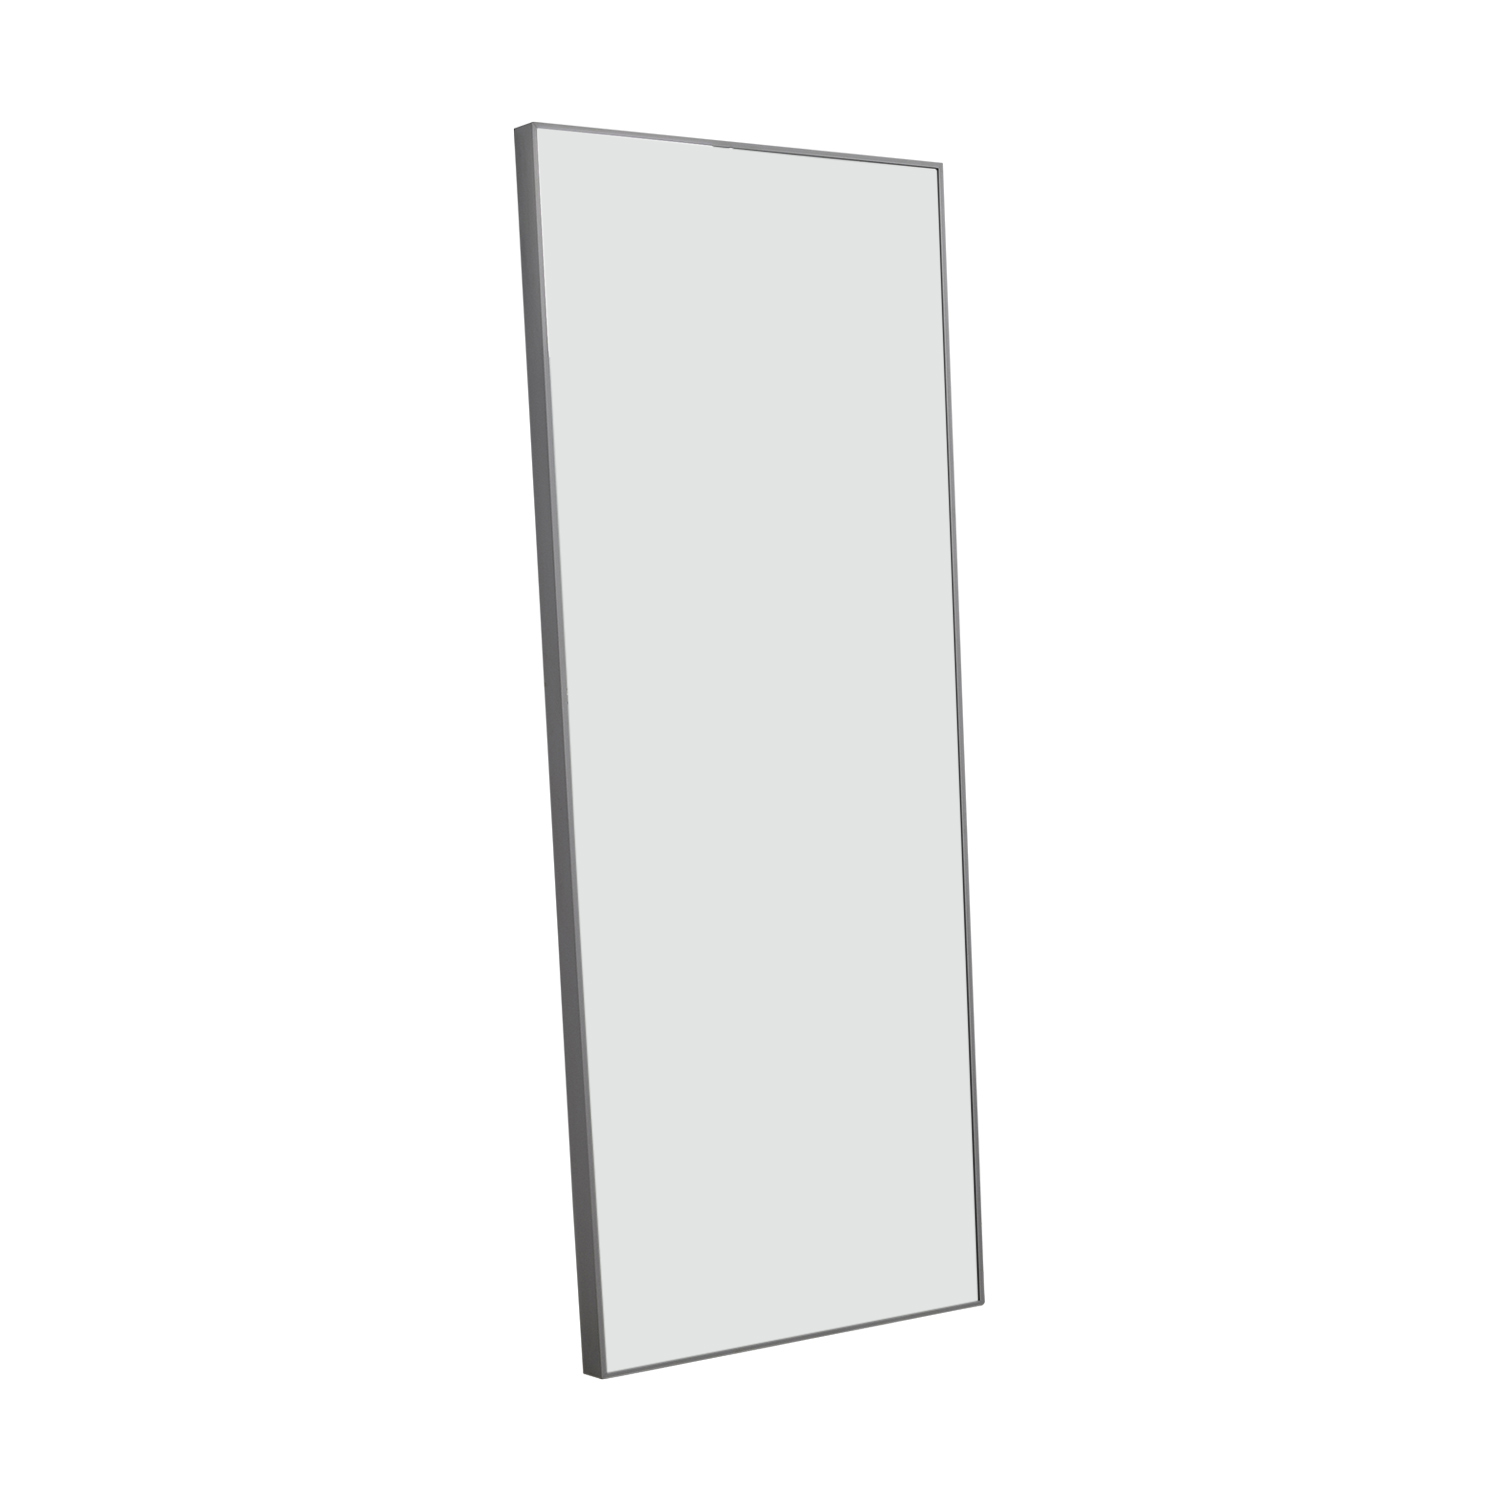 Floor Mirror with Chrome Border silver frame/mirror